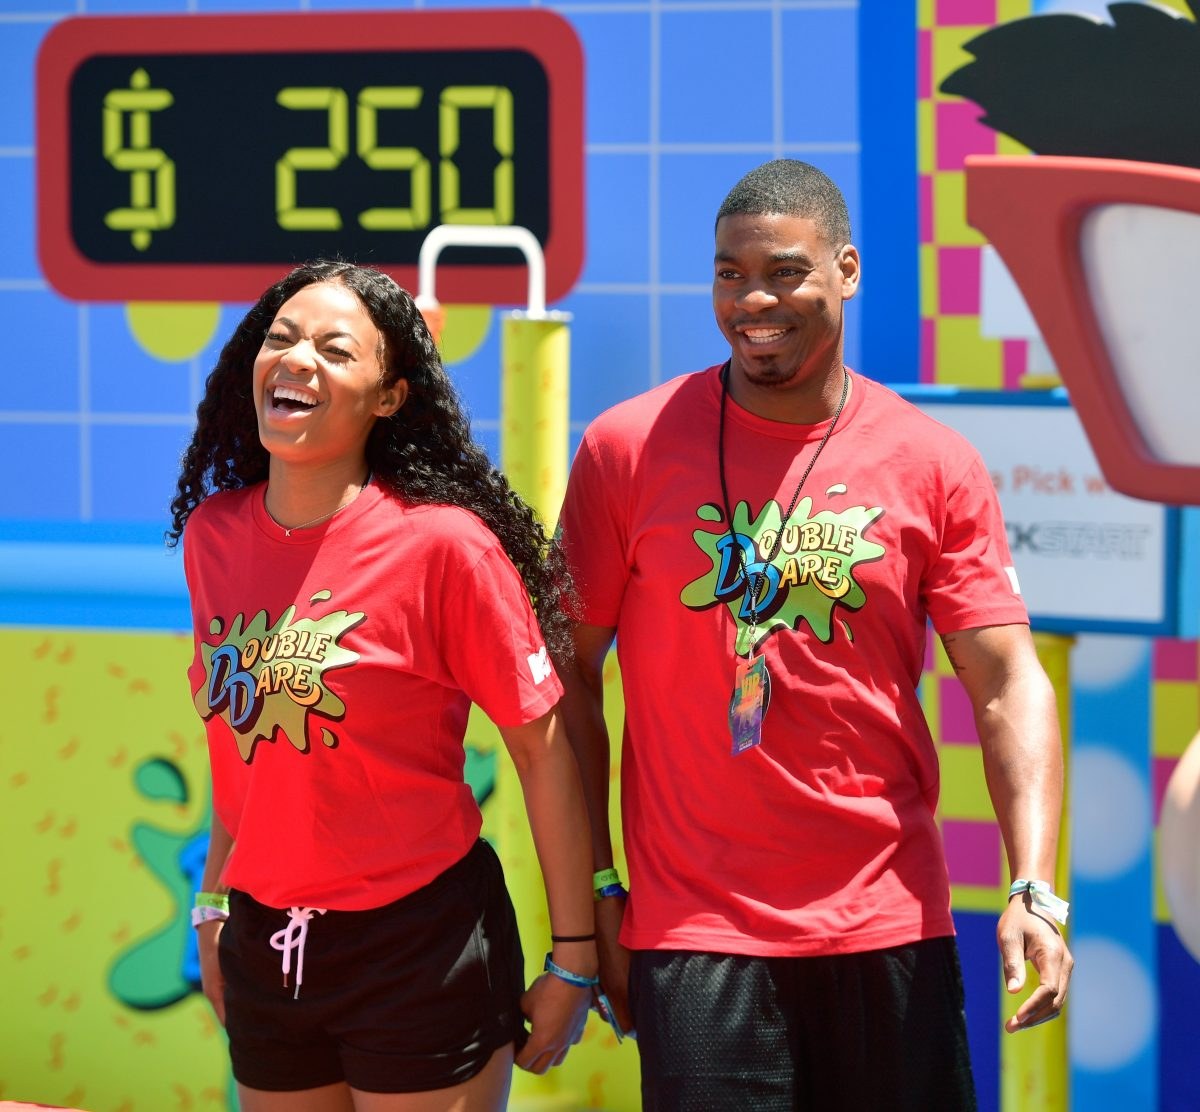 Kam Williams and Leroy Garrett attend Double Dare presented by Mtn Dew Kickstart at Comedy Central